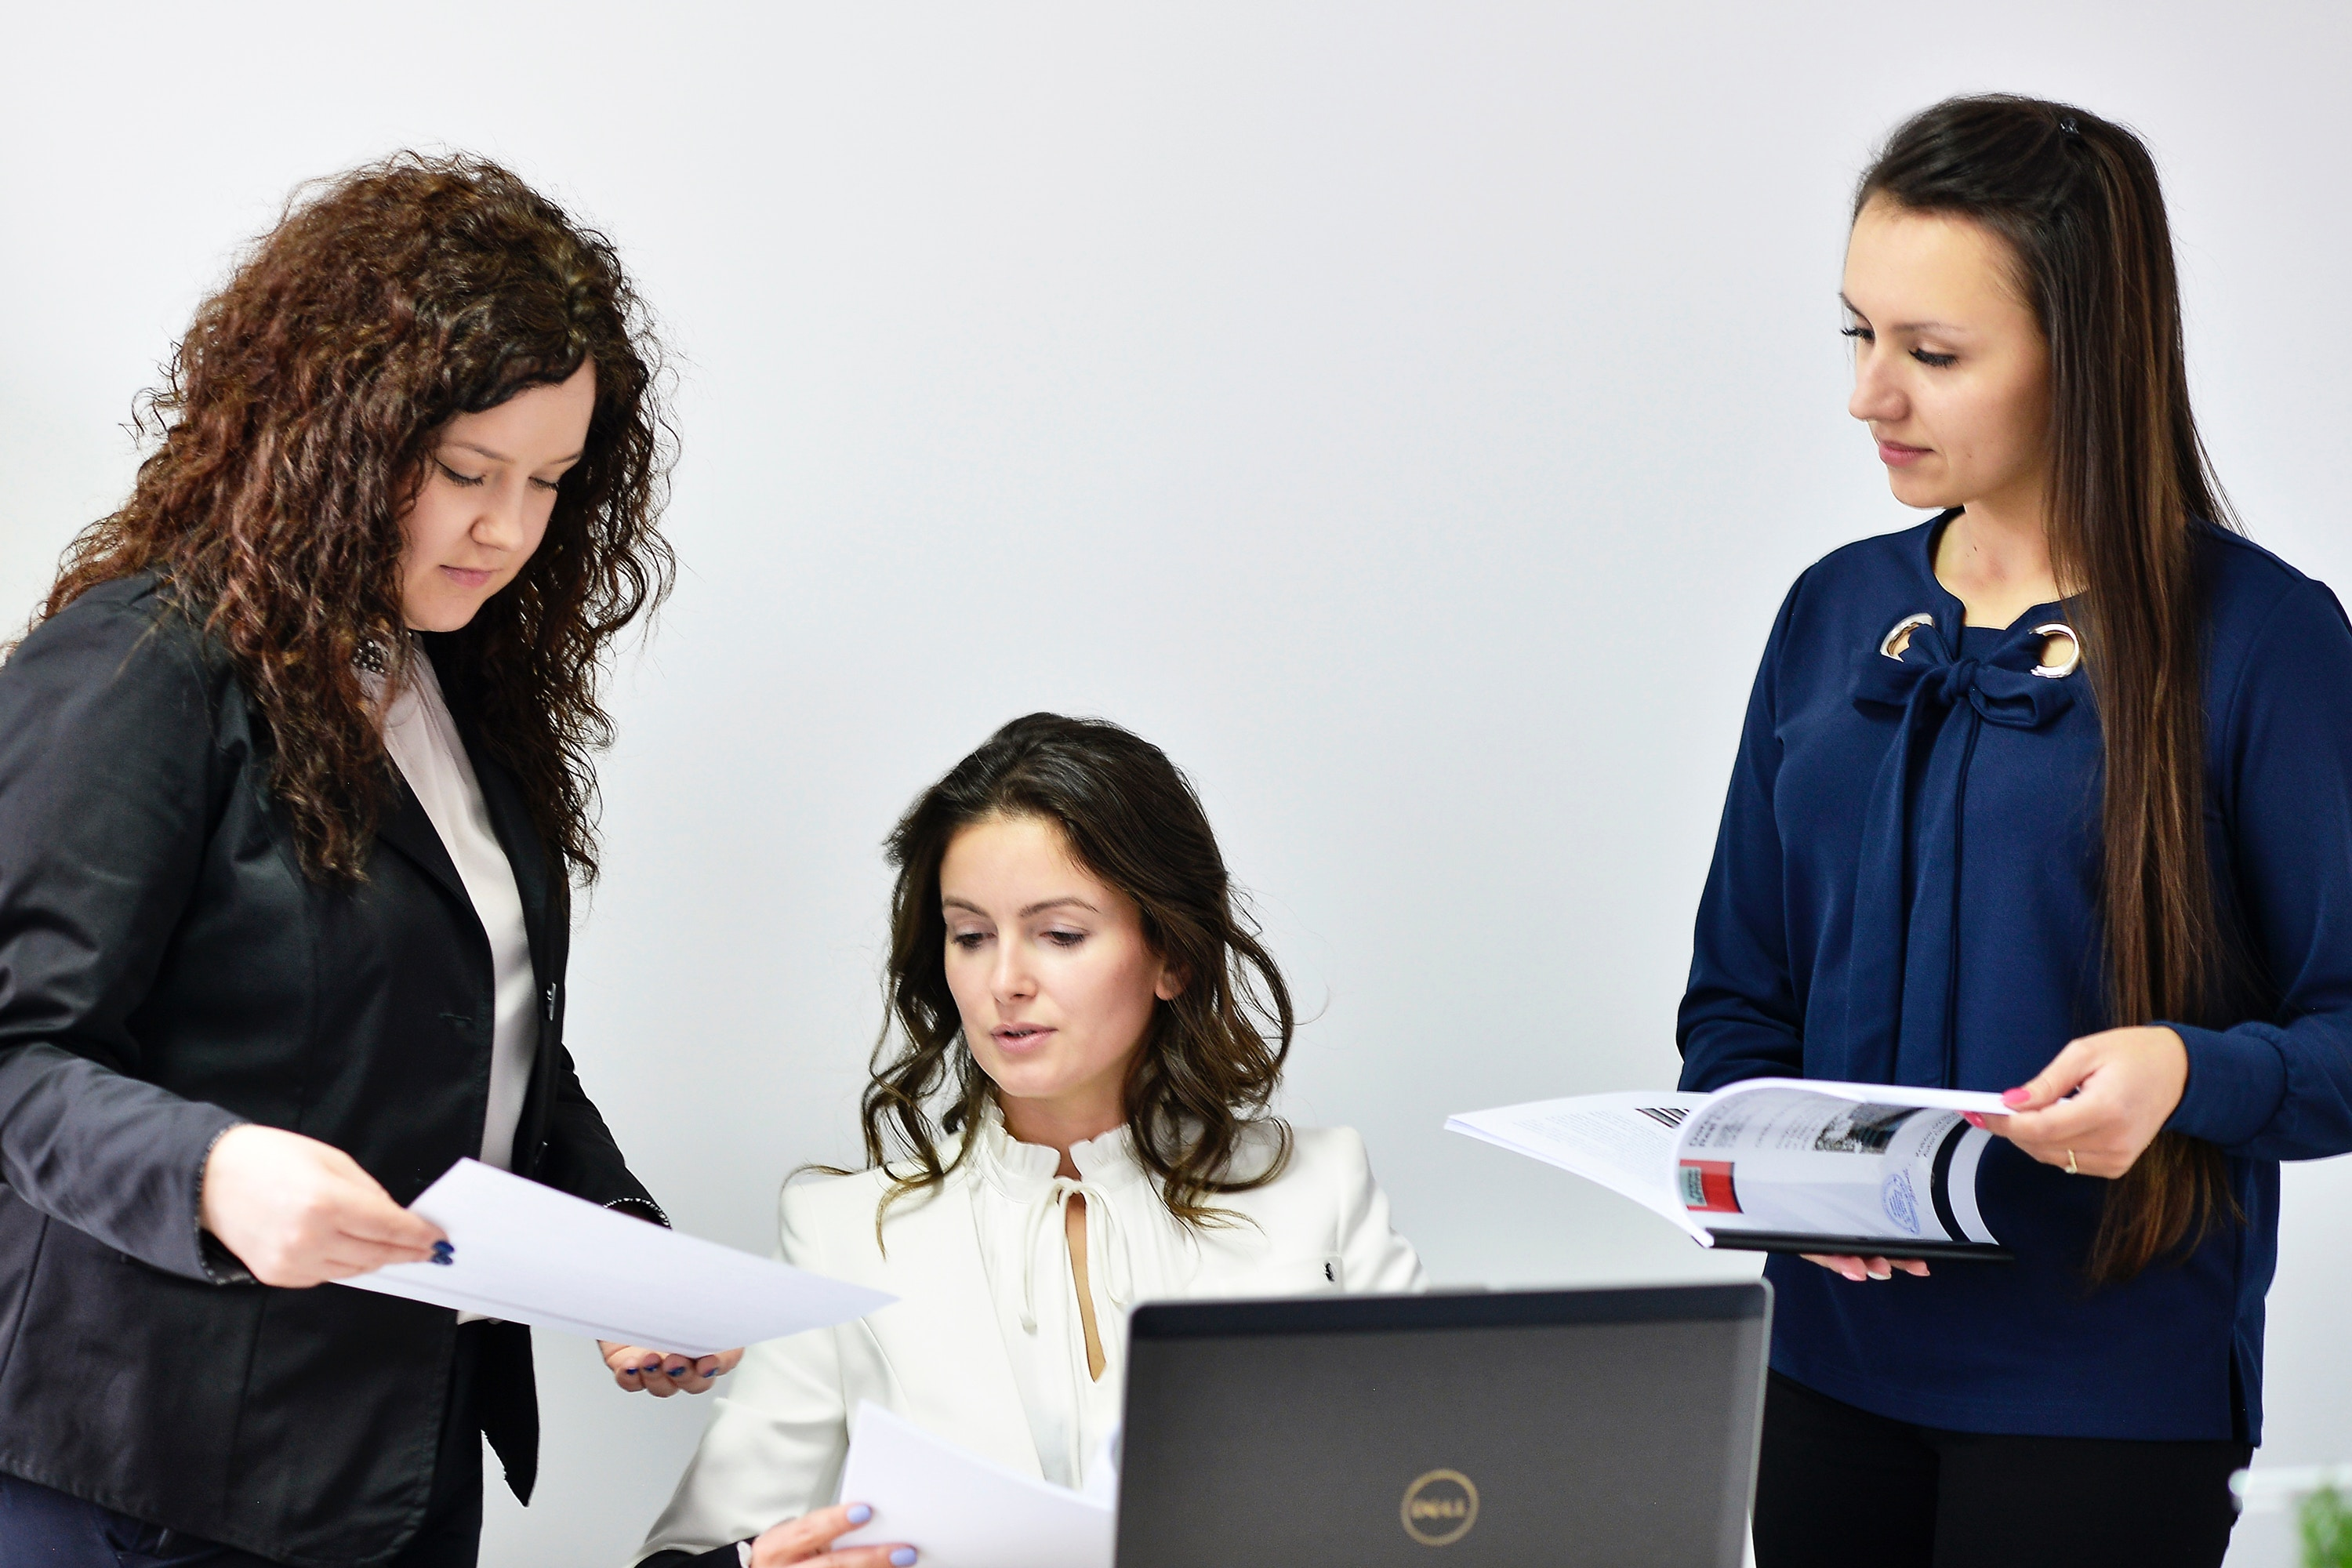 careers advice on job interviews  how to be successful and get that job